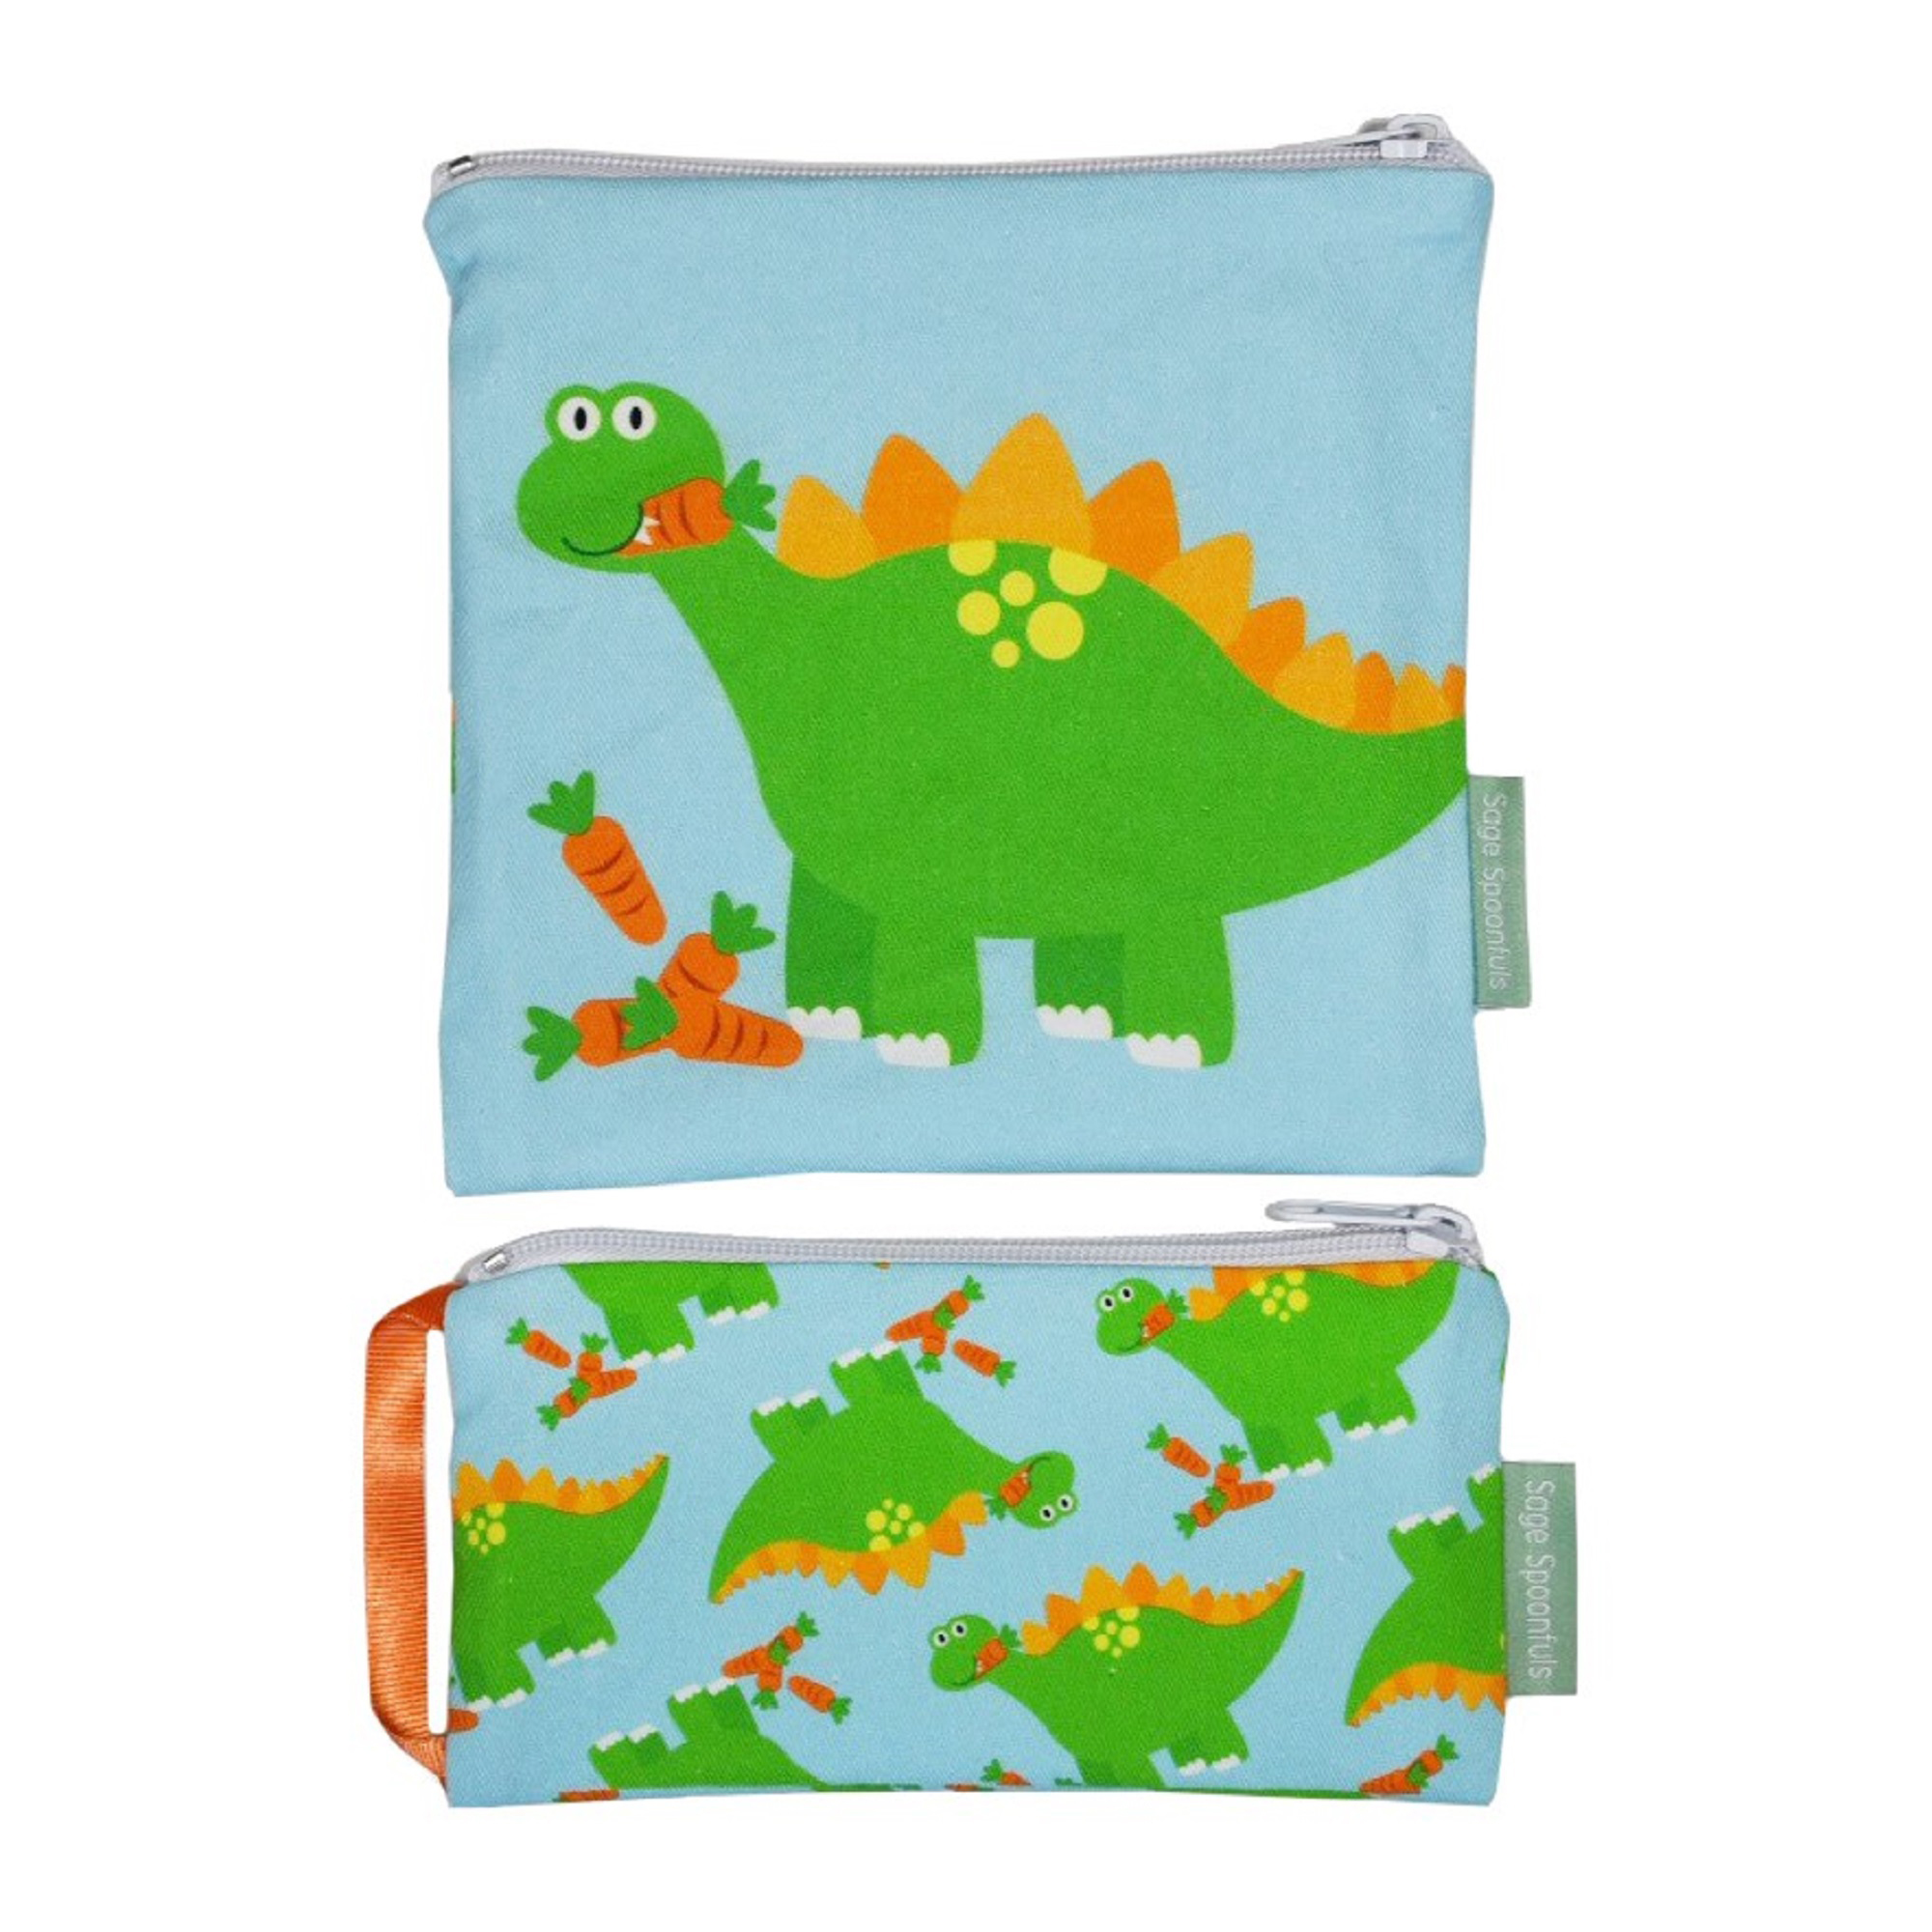 Sage Spoonfuls Snackie & Munchie Set, Reusable Sandwich and Snack Bag, Dinosaur